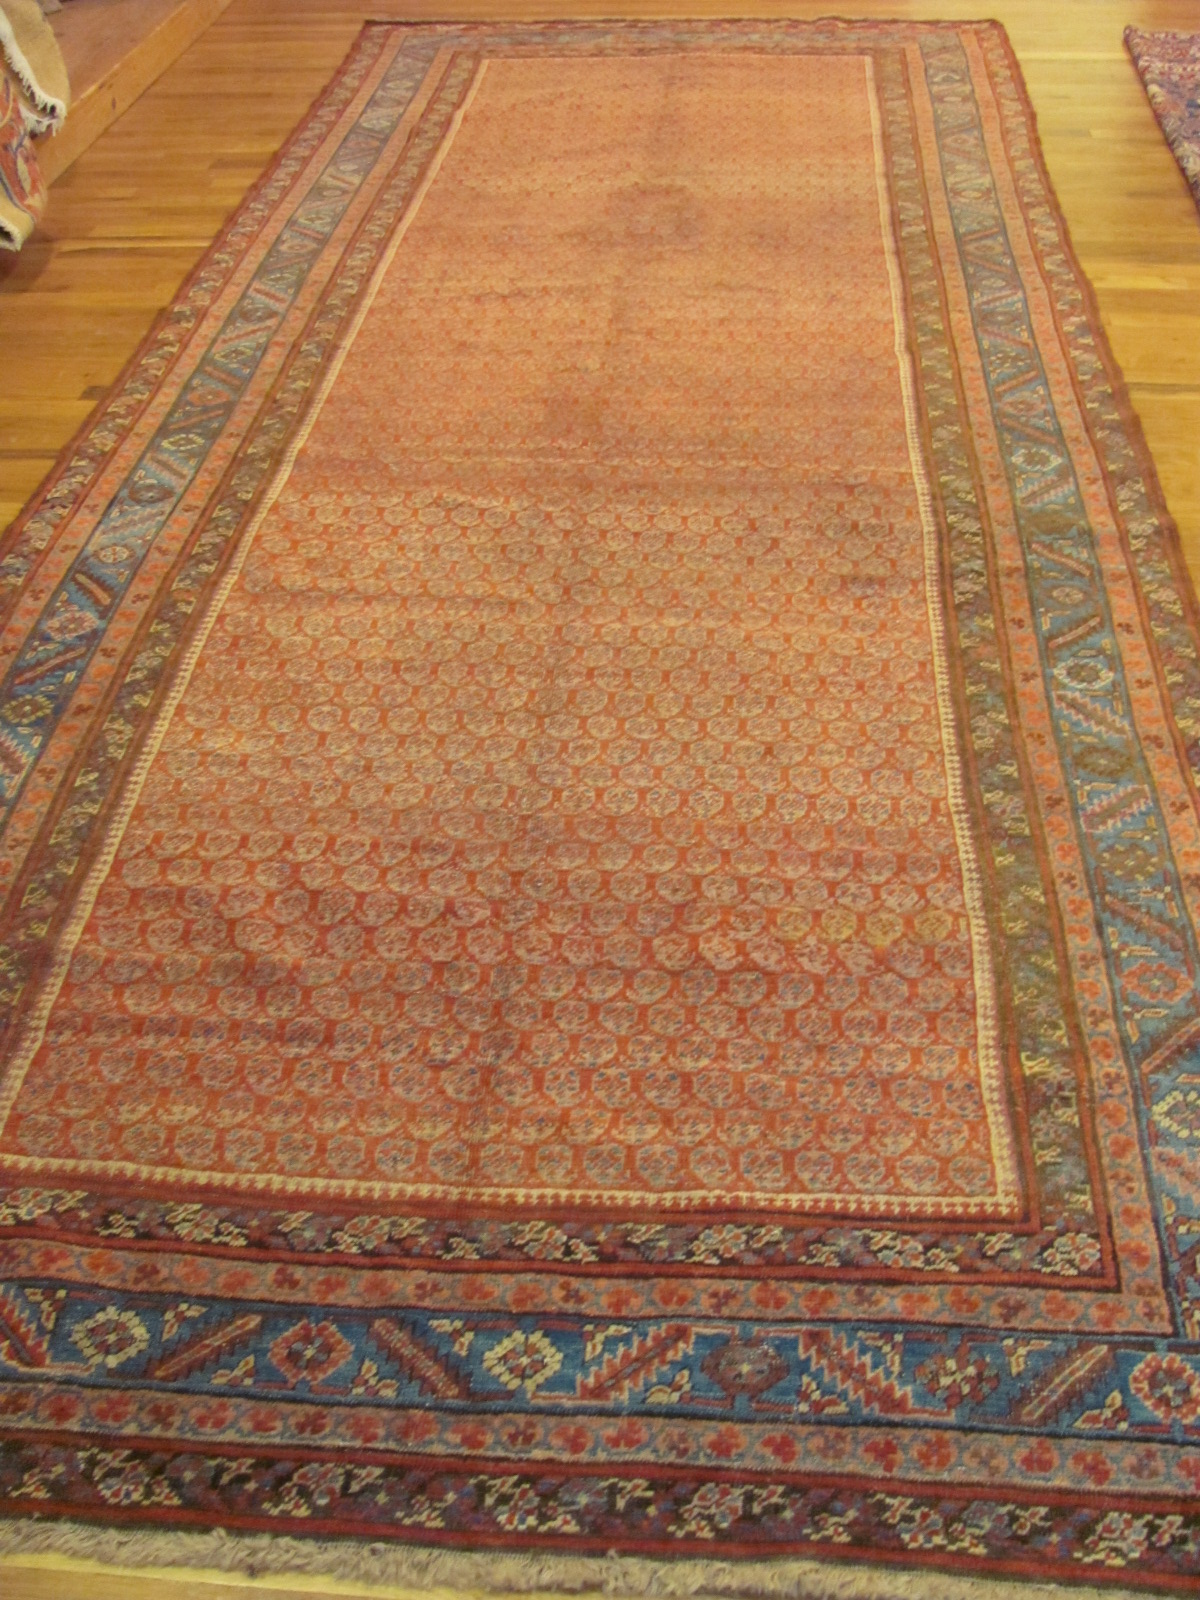 Antique Persian Bakshaish Rug | Circa 1880